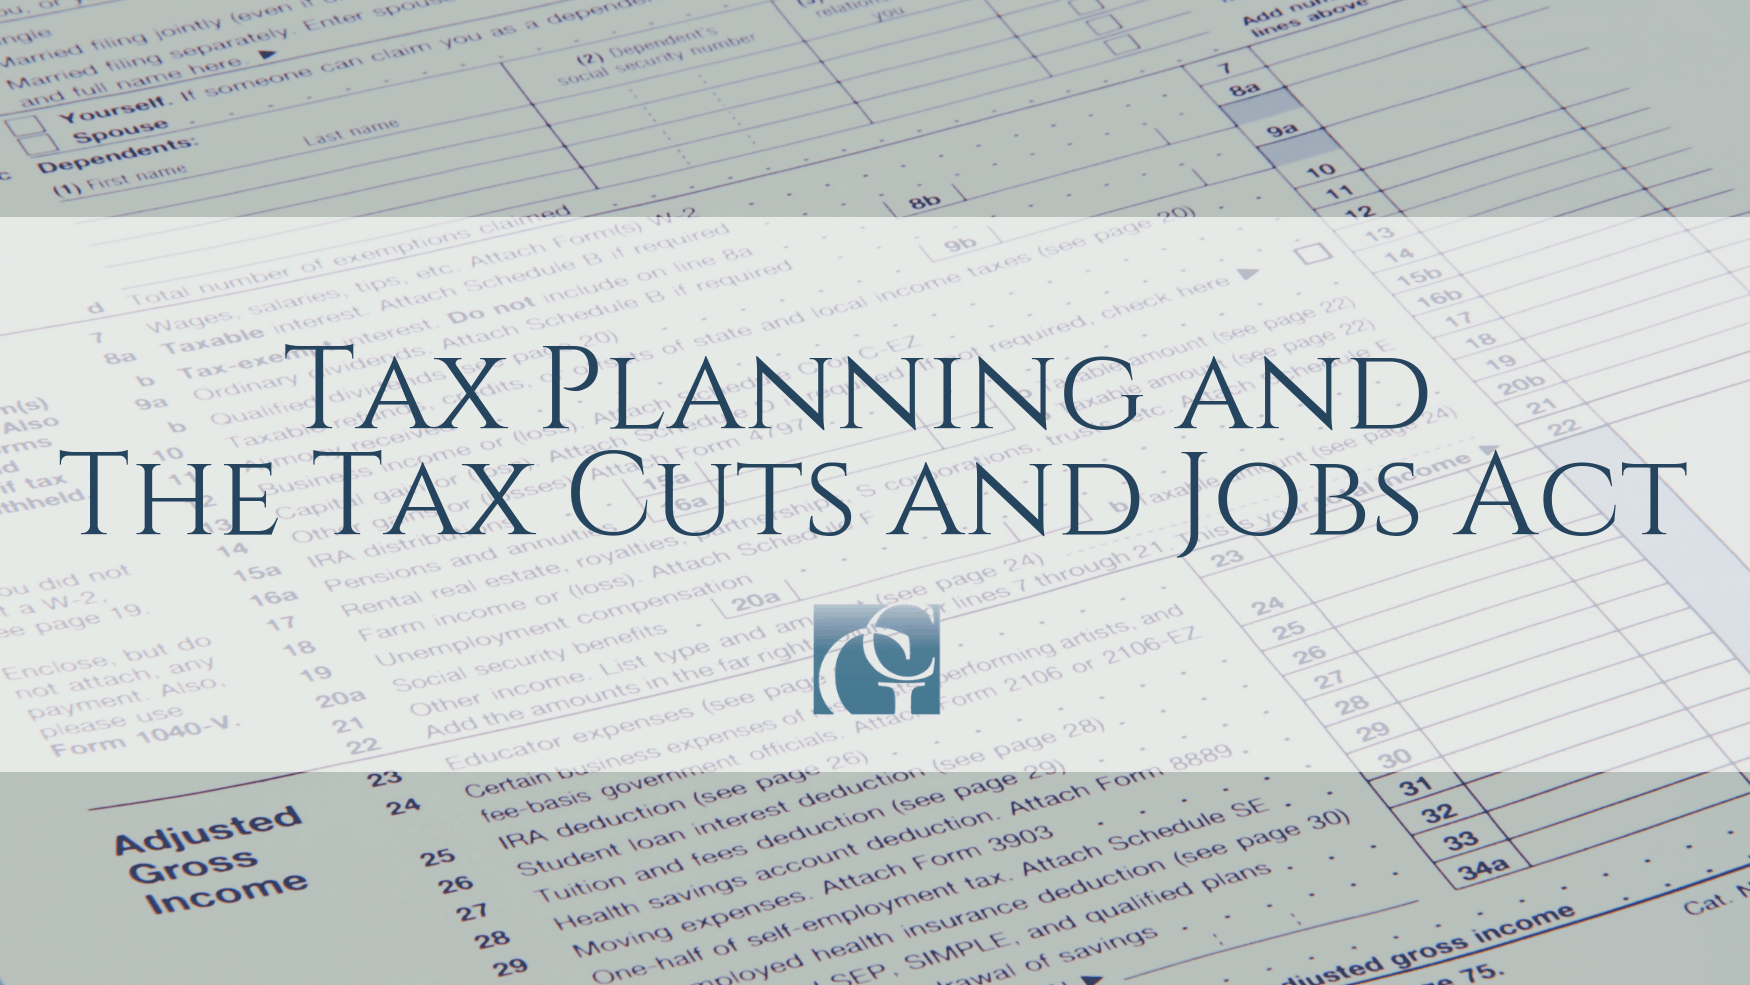 Tax Planning and The Tax Cuts and Jobs Act